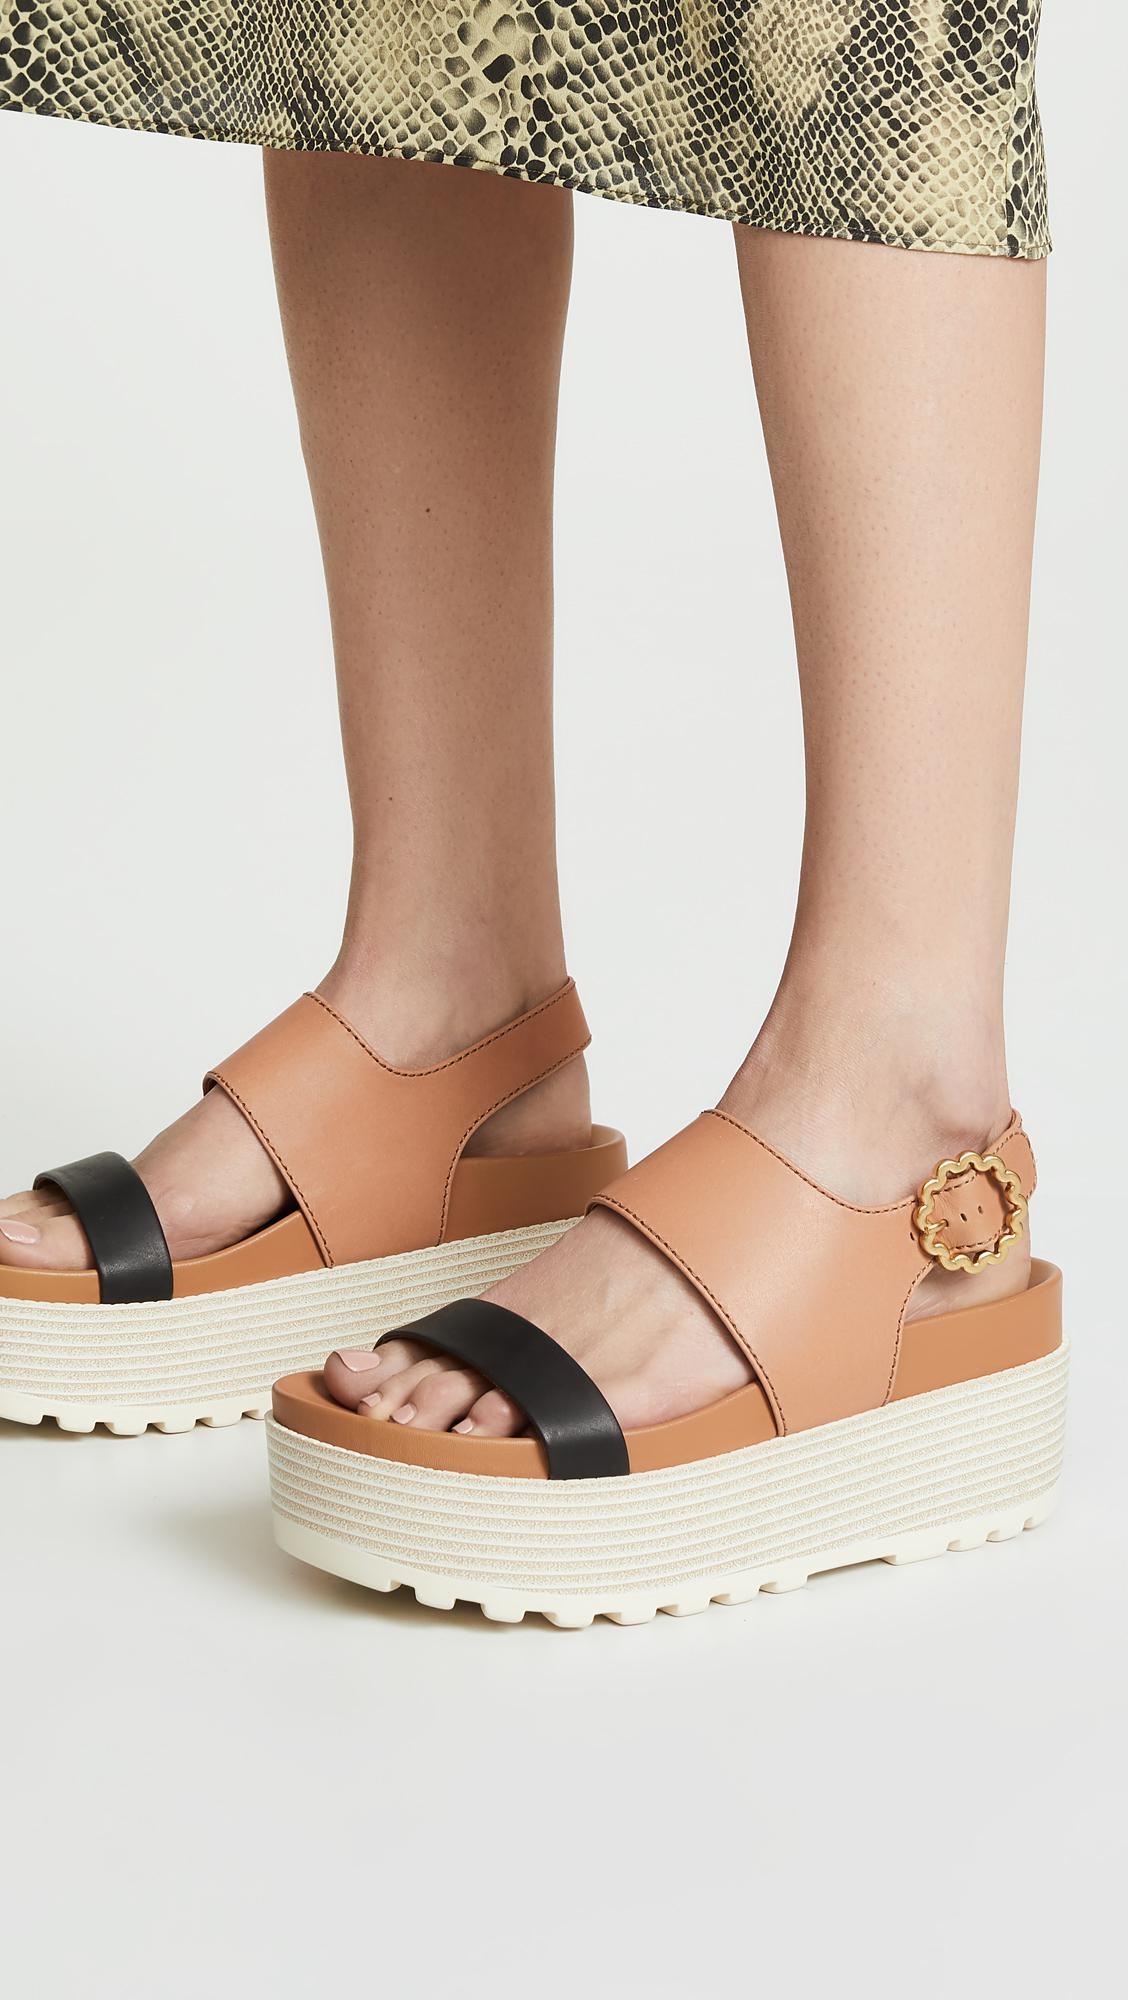 4187da5bdc4 See By Chloé - Multicolor Jenna Platform Sandals - Lyst. View fullscreen